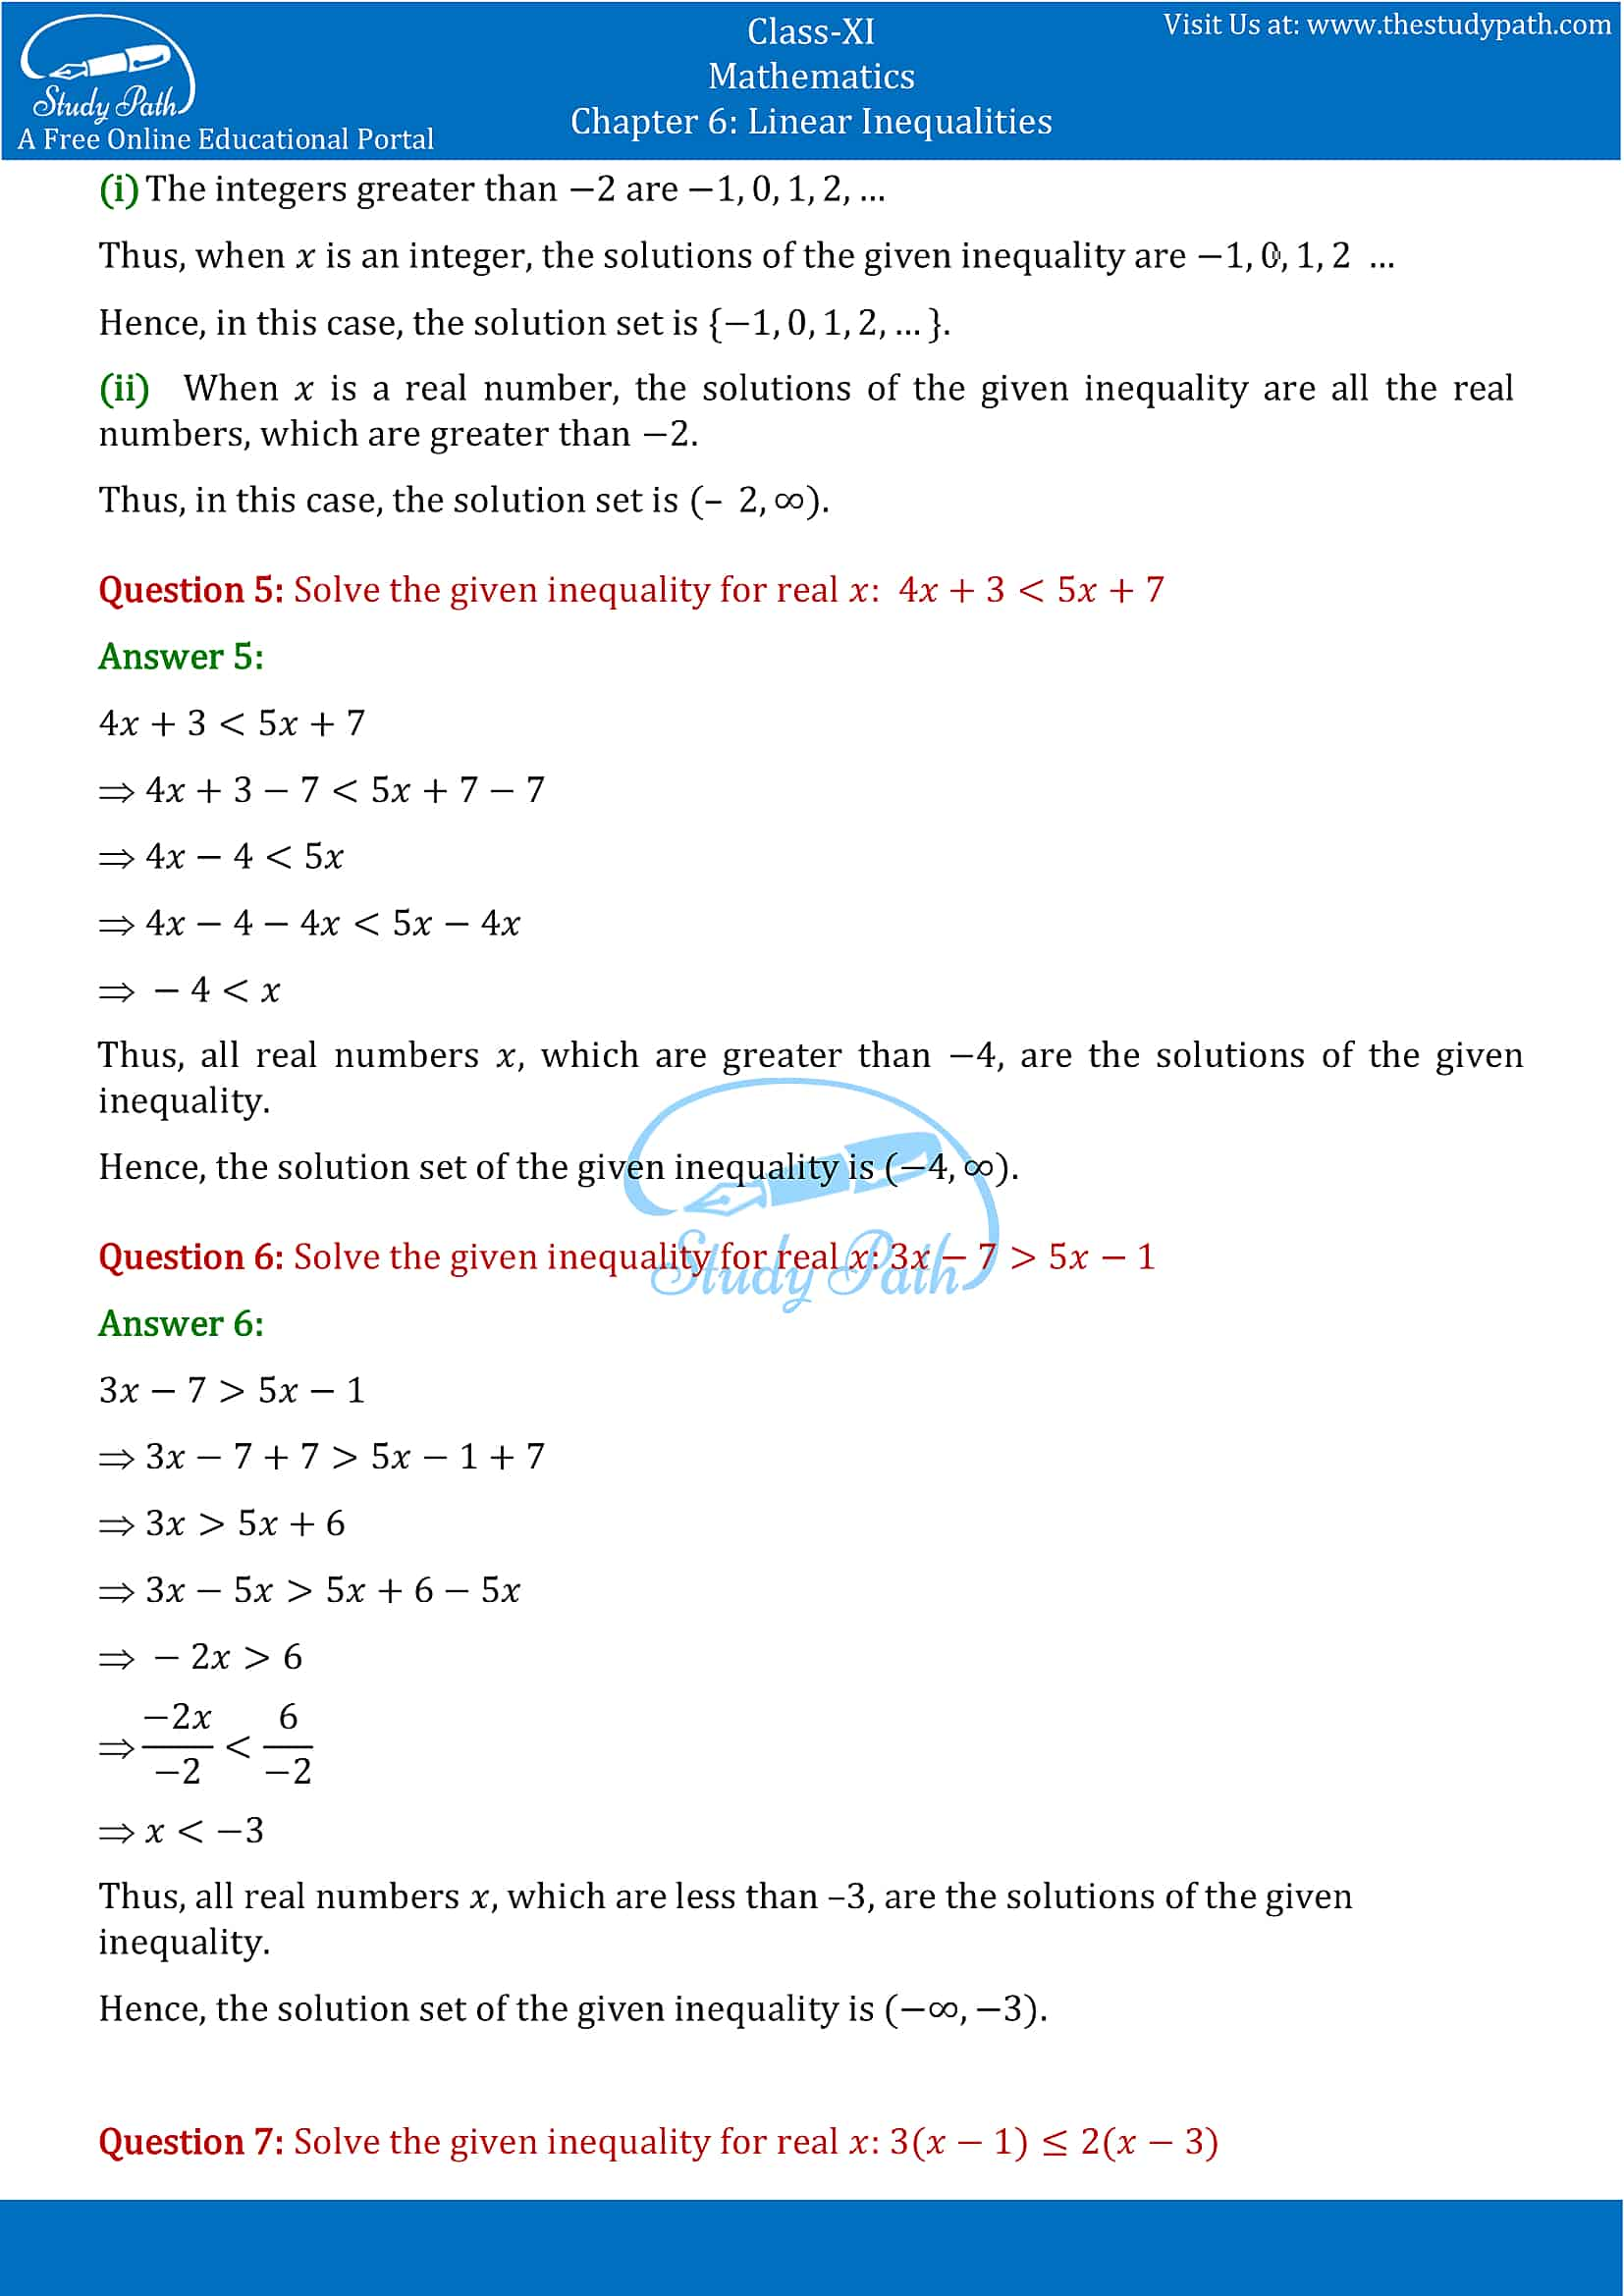 NCERT Solutions for Class 11 Maths chapter 6 Linear Inequalities Exercise 6.1 Part-3